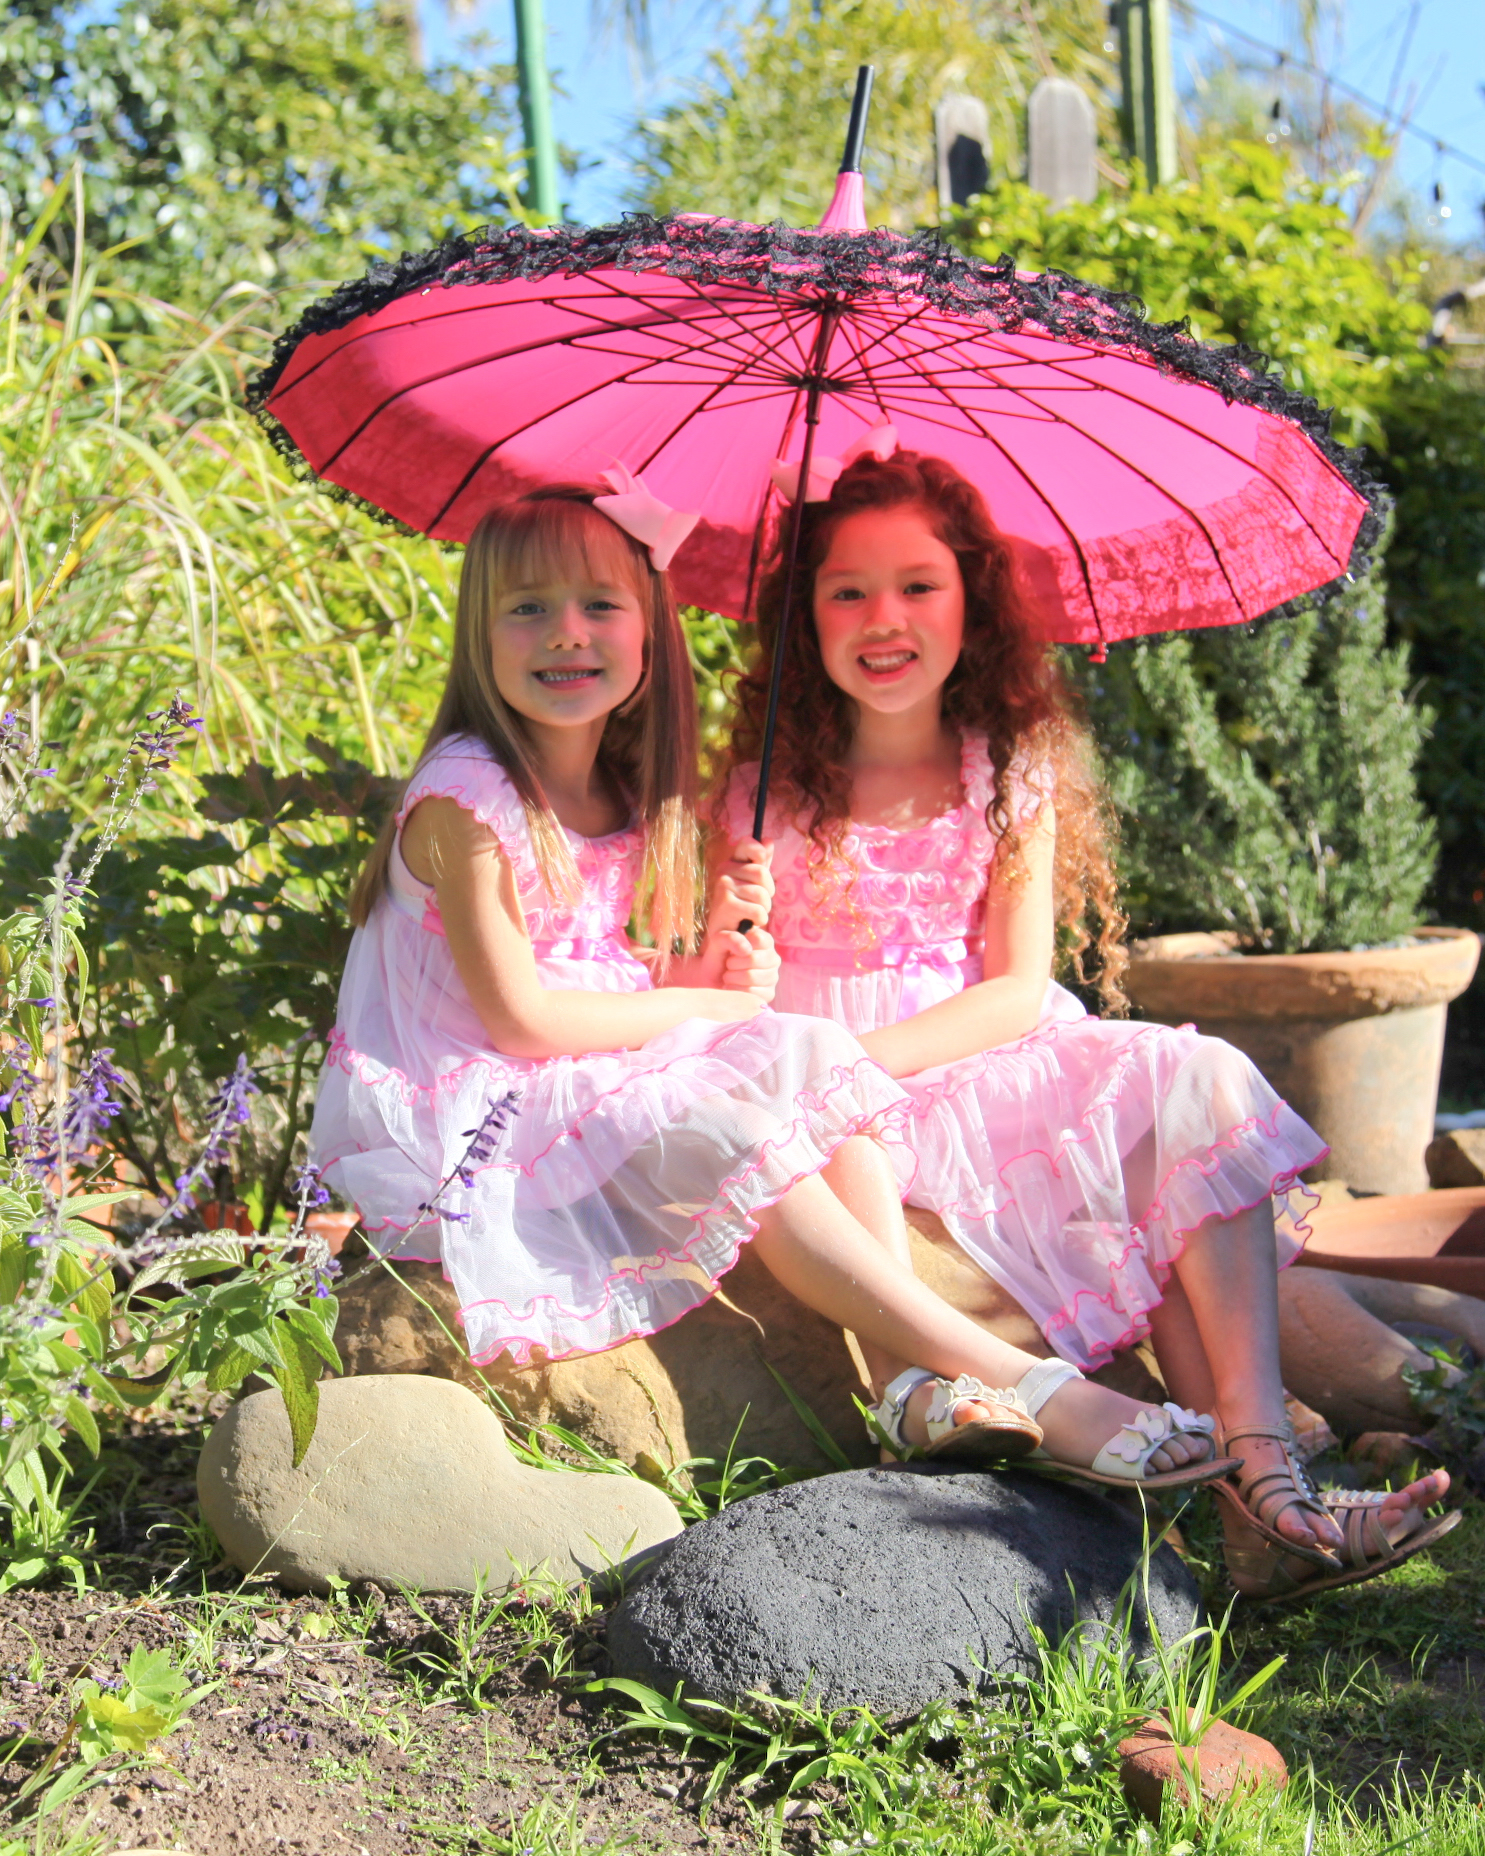 Marvellous Lace Frill Pagoda Parasol  Parasols In Paradise With Extraordinary Lace Frill Pagoda Parasol With Amusing Garden Centres West Yorkshire Also Garden Fence Cost In Addition Garden Beach Huts For Sale And Cold Frames Gardening As Well As How To Plant A Three Sisters Garden Additionally Garden Centre Bristol From Parasolsinparadisecom With   Extraordinary Lace Frill Pagoda Parasol  Parasols In Paradise With Amusing Lace Frill Pagoda Parasol And Marvellous Garden Centres West Yorkshire Also Garden Fence Cost In Addition Garden Beach Huts For Sale From Parasolsinparadisecom